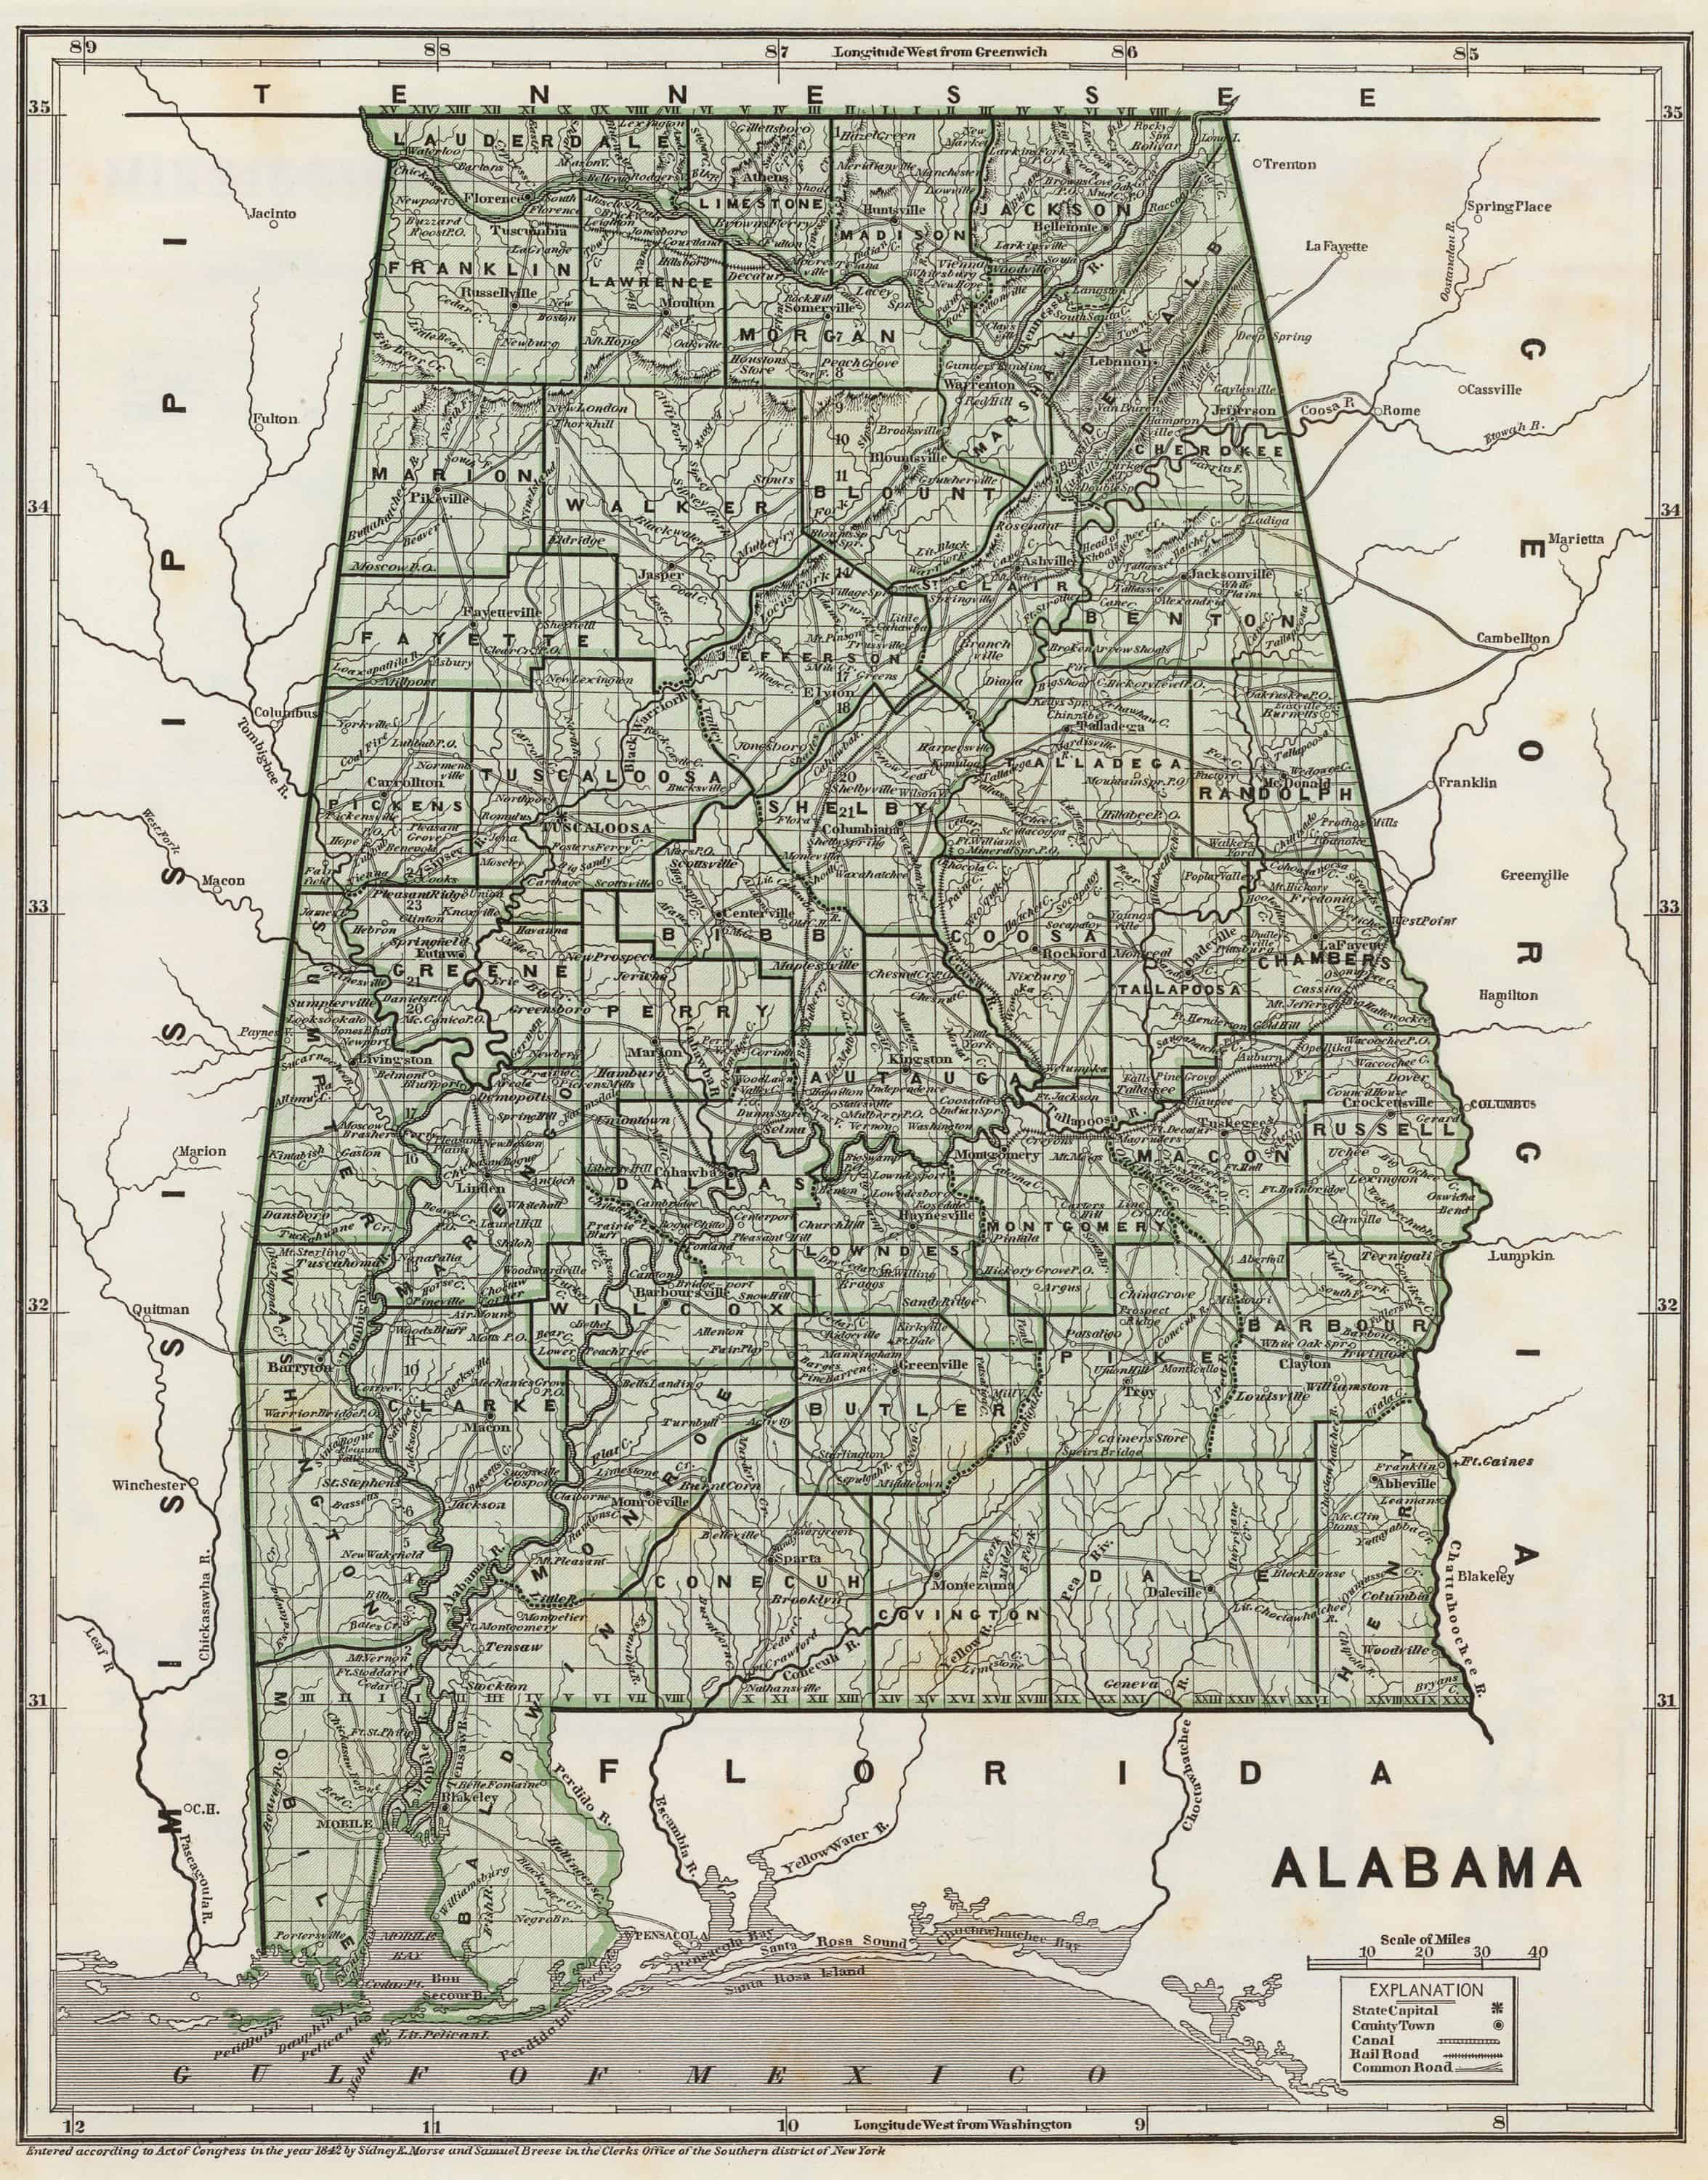 Old Historical City, County and State Maps of Alabama on houston university map, new mexico university map, tenn tech university map, potomac state university map, university of texas at dallas map, university of louisiana at monroe map, howard payne university map, notre dame of maryland university map, uc davis university map, trinity international university map, delaware university map, sul ross state university map, saint lawrence university map, southern wesleyan university map, university of texas at arlington map, university of the ozarks map, samuel merritt university map, saint peter's university map, kansas wesleyan university map, simpson university map,